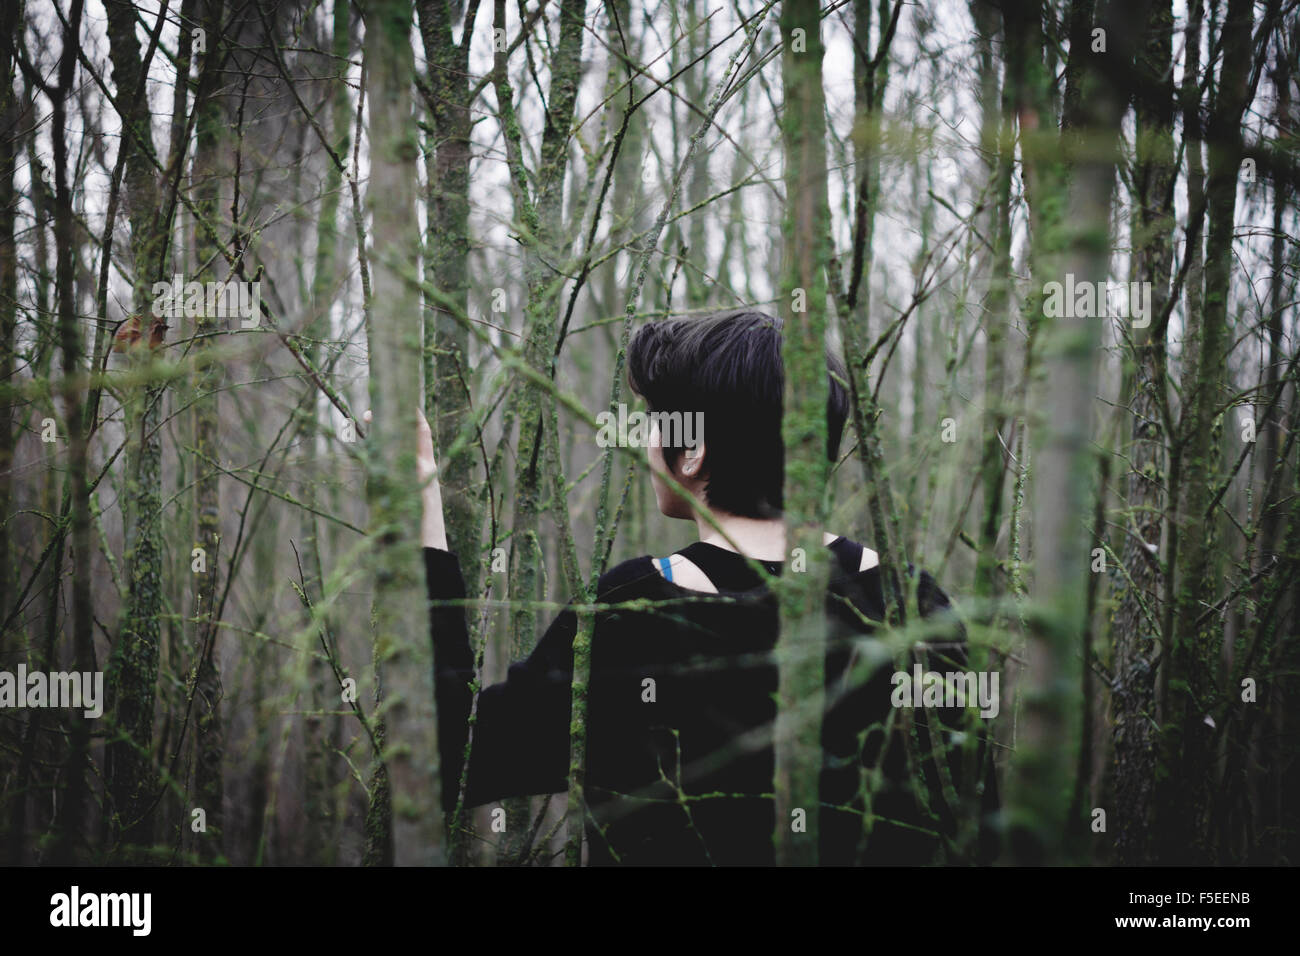 Rear view of a woman lost in the forest - Stock Image